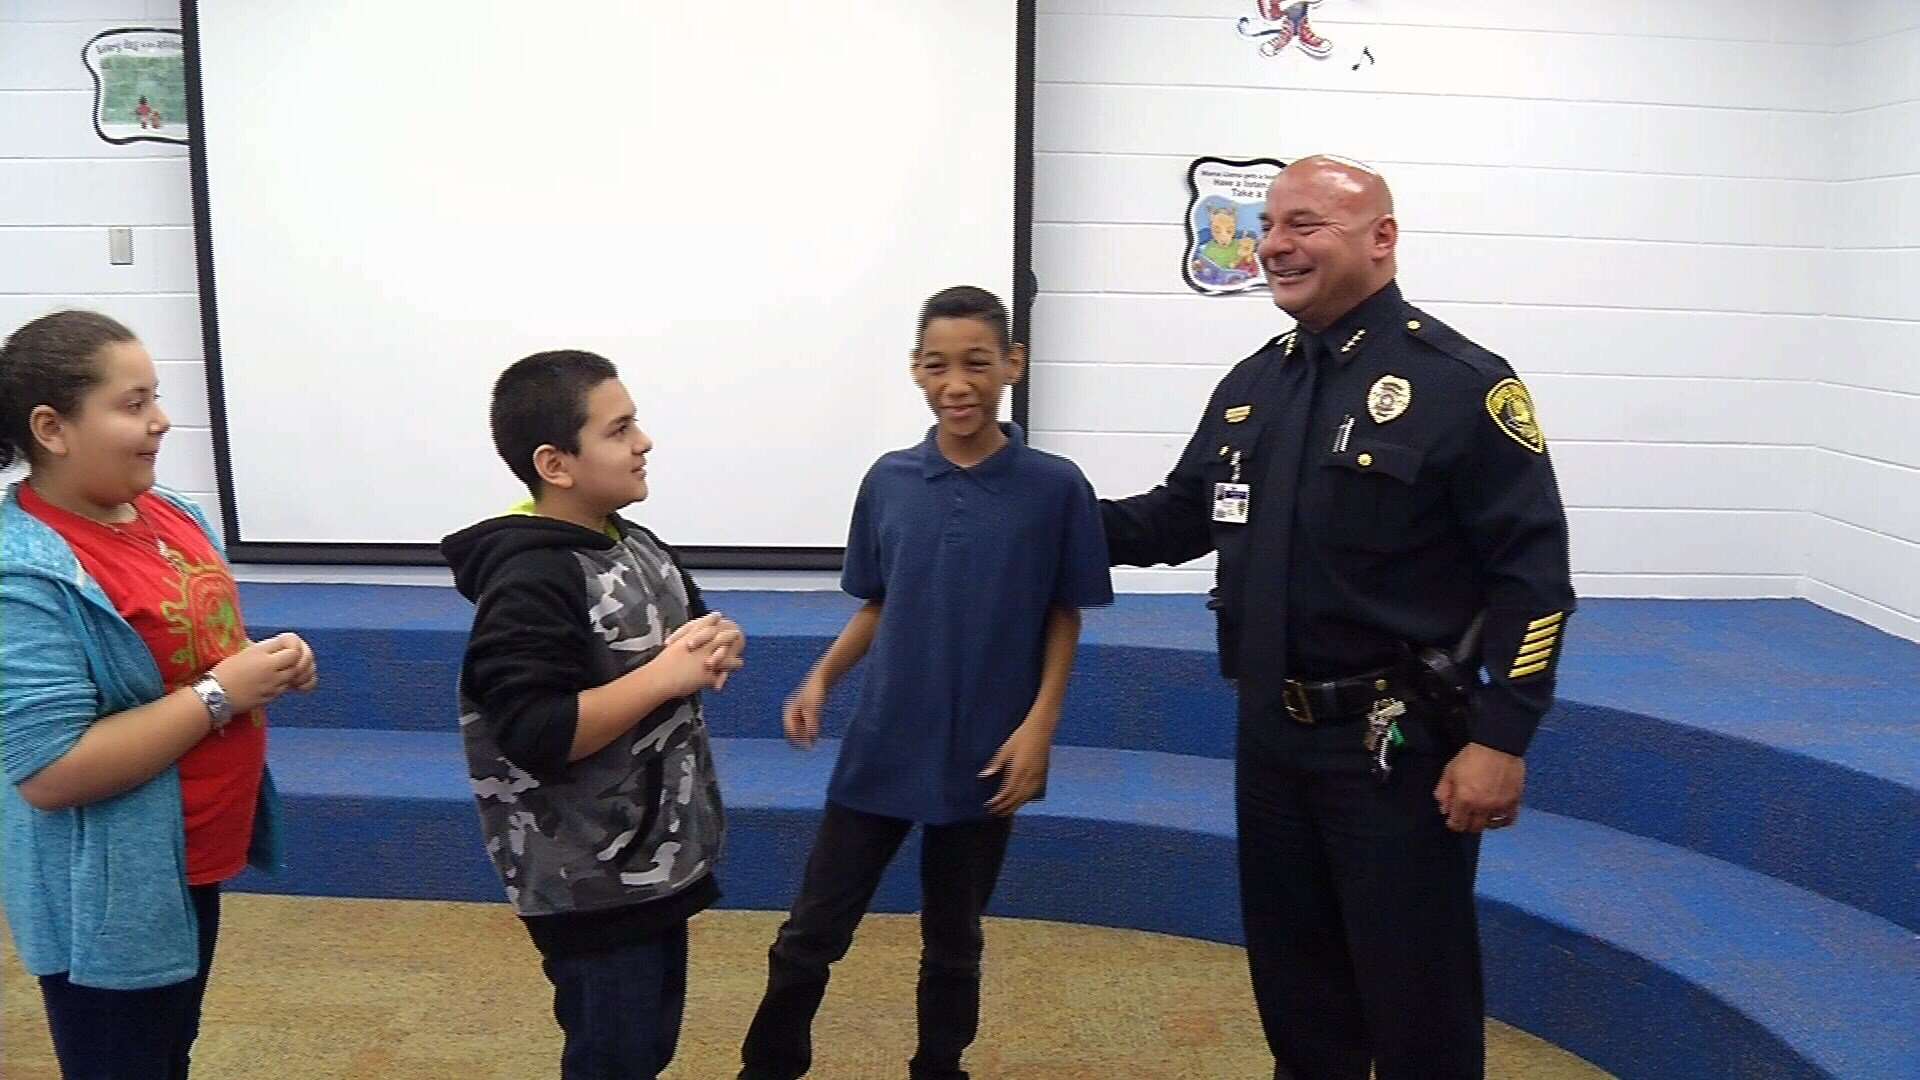 The students got to meet with the chief after Thursday morning's reading.